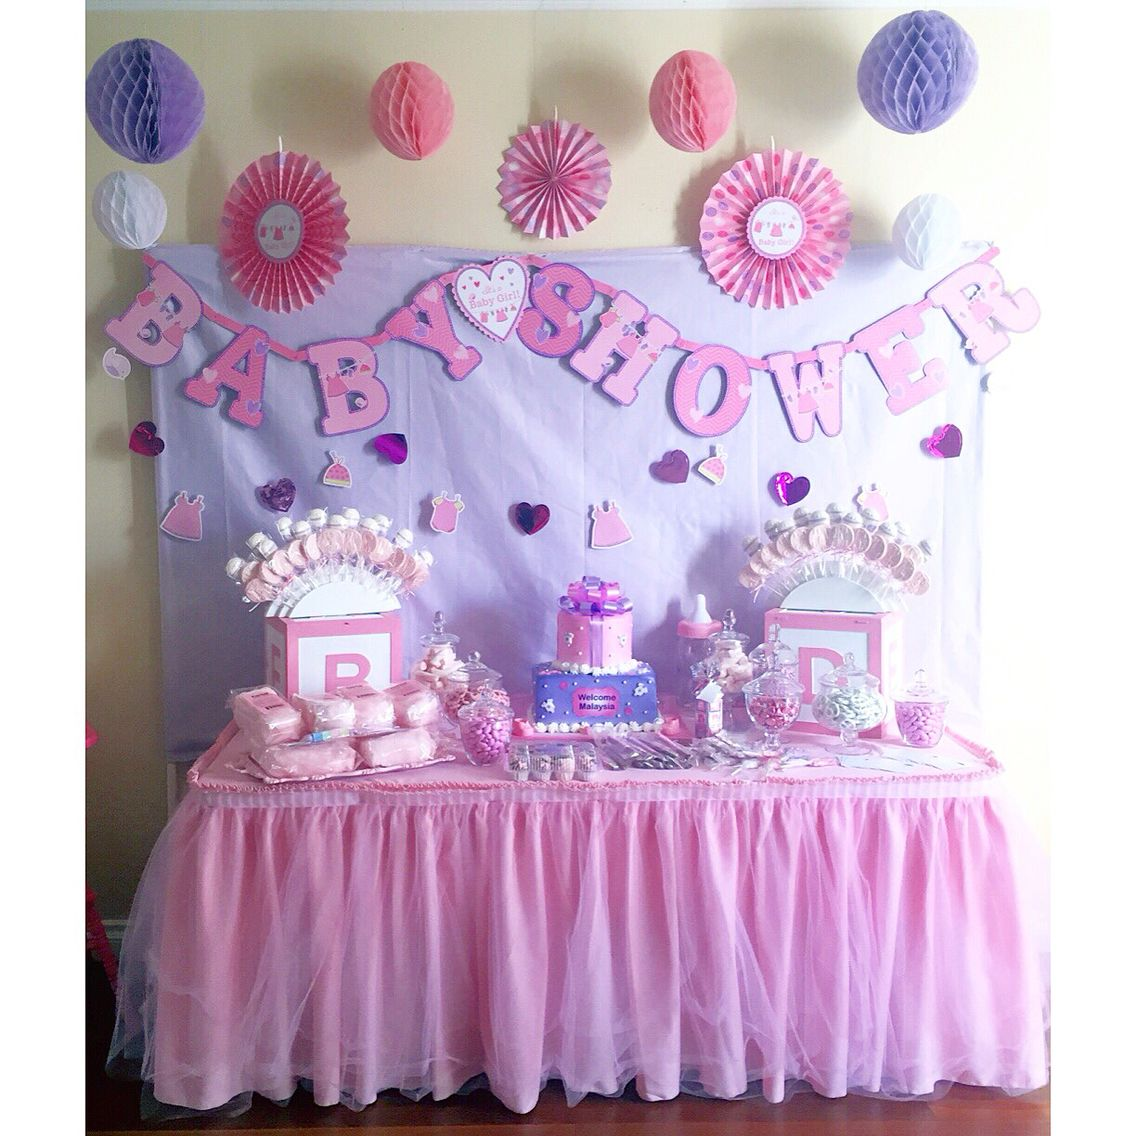 Pink Lavender Baby Shower Dessert Table Prettylittleshowers